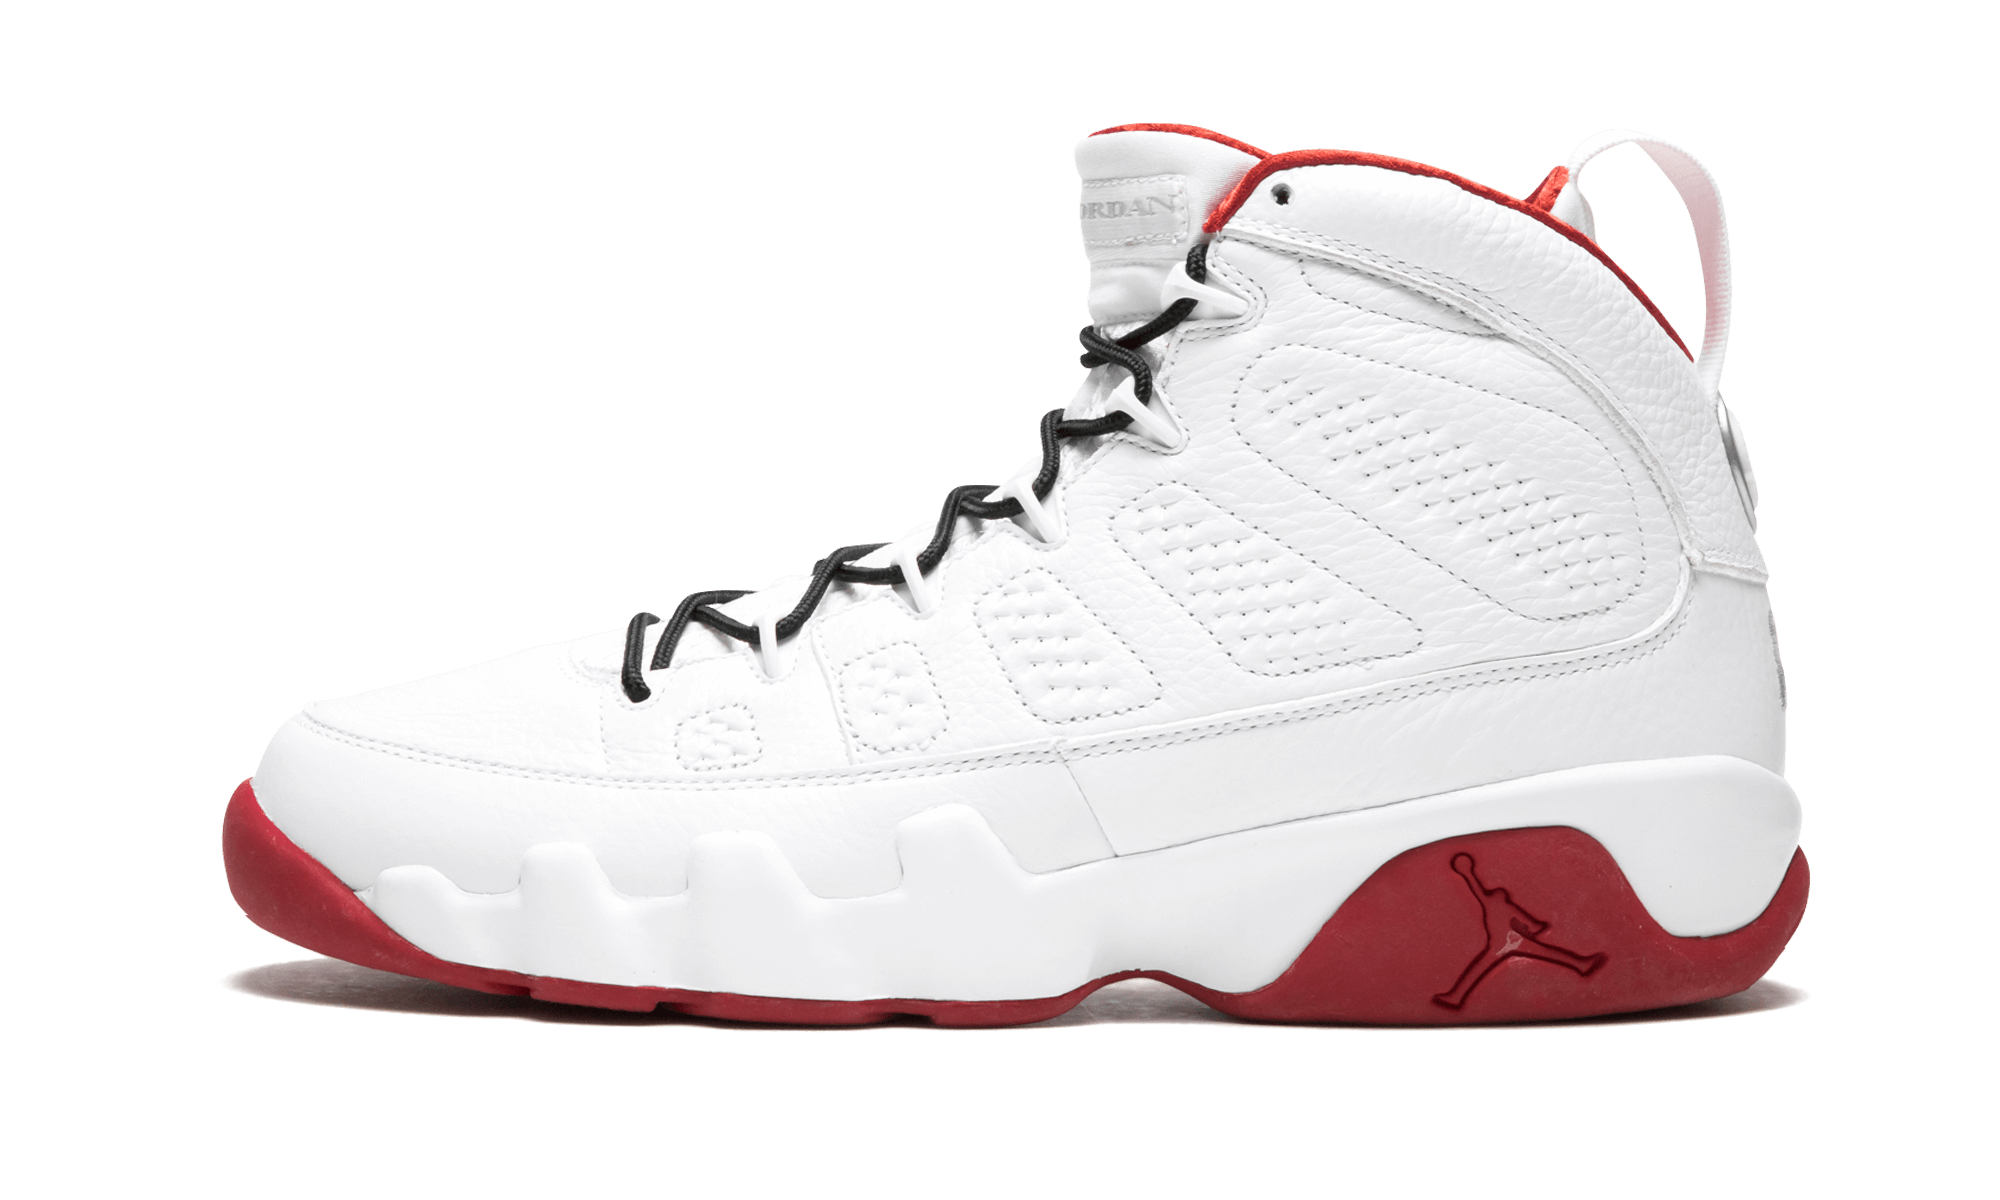 """finest selection 76b39 bc896 The Air Jordan 9 """"History of Flight"""" is a rare sample colorway that was"""